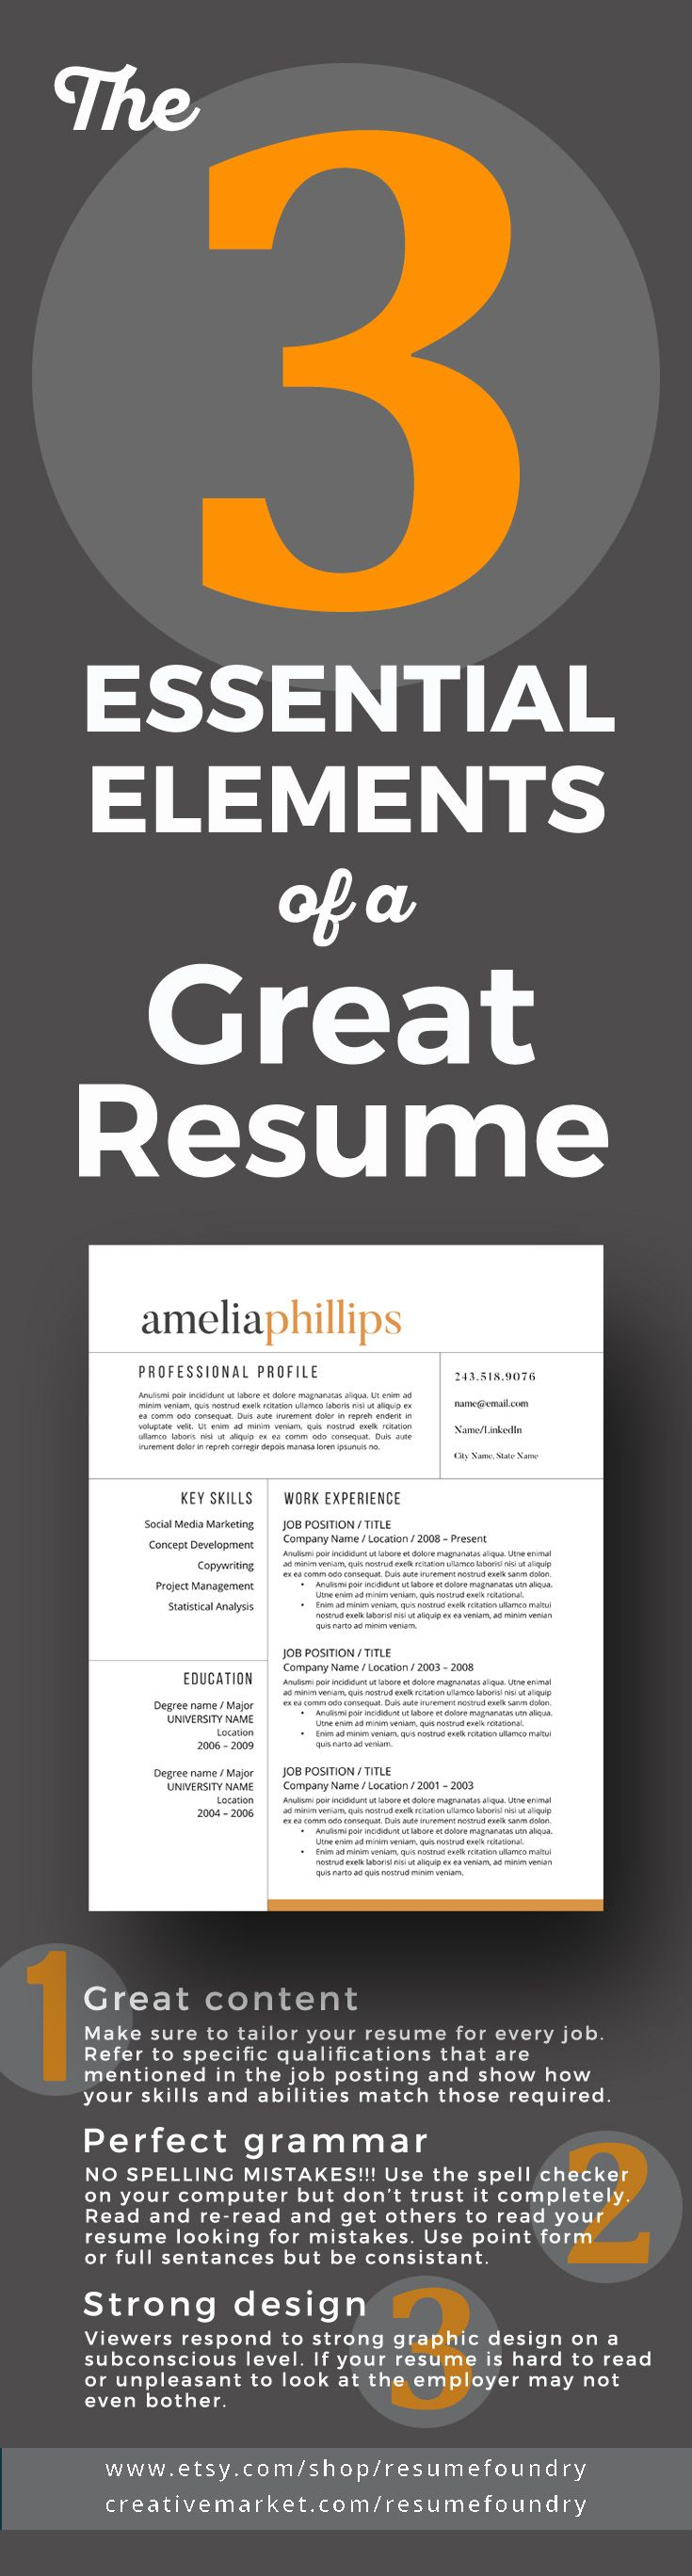 3 key design features every resume in 2018 should include